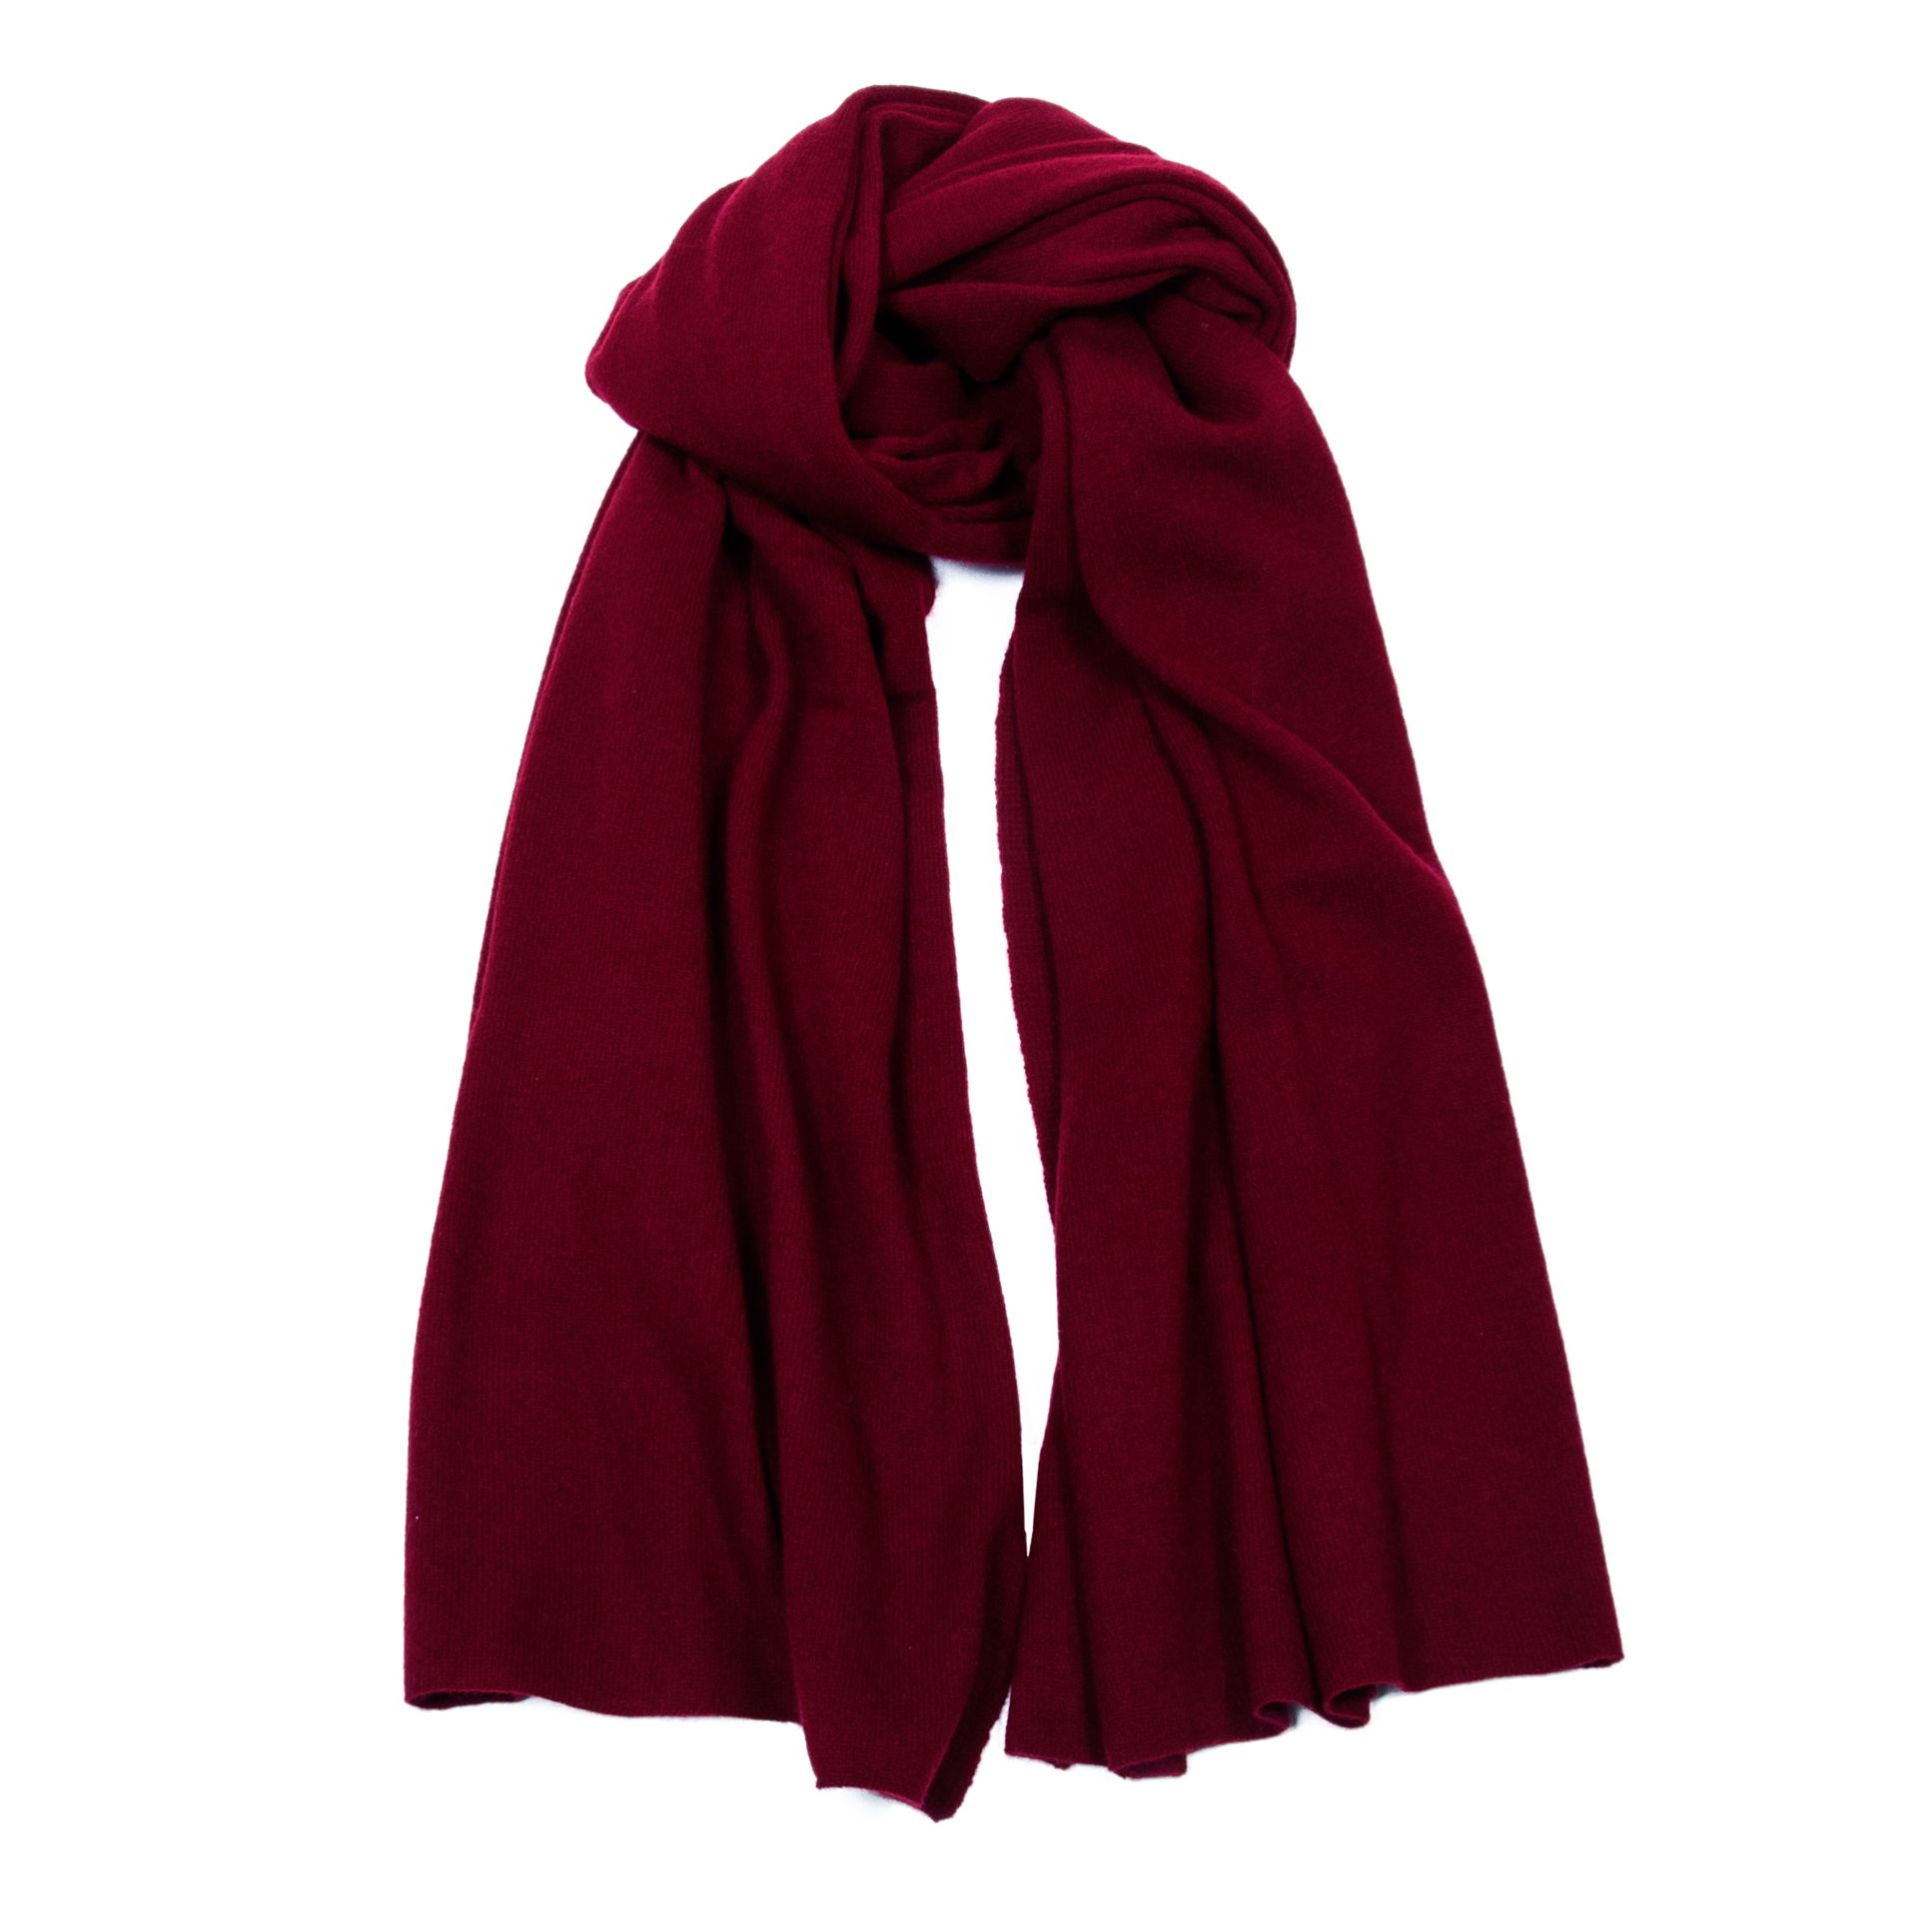 Kashmina signature scarf, 100% high quality cashmere. Take a closer look: https://www.kashmina.no/collections/kashmirskjerf/products/kashmirskjerf-1